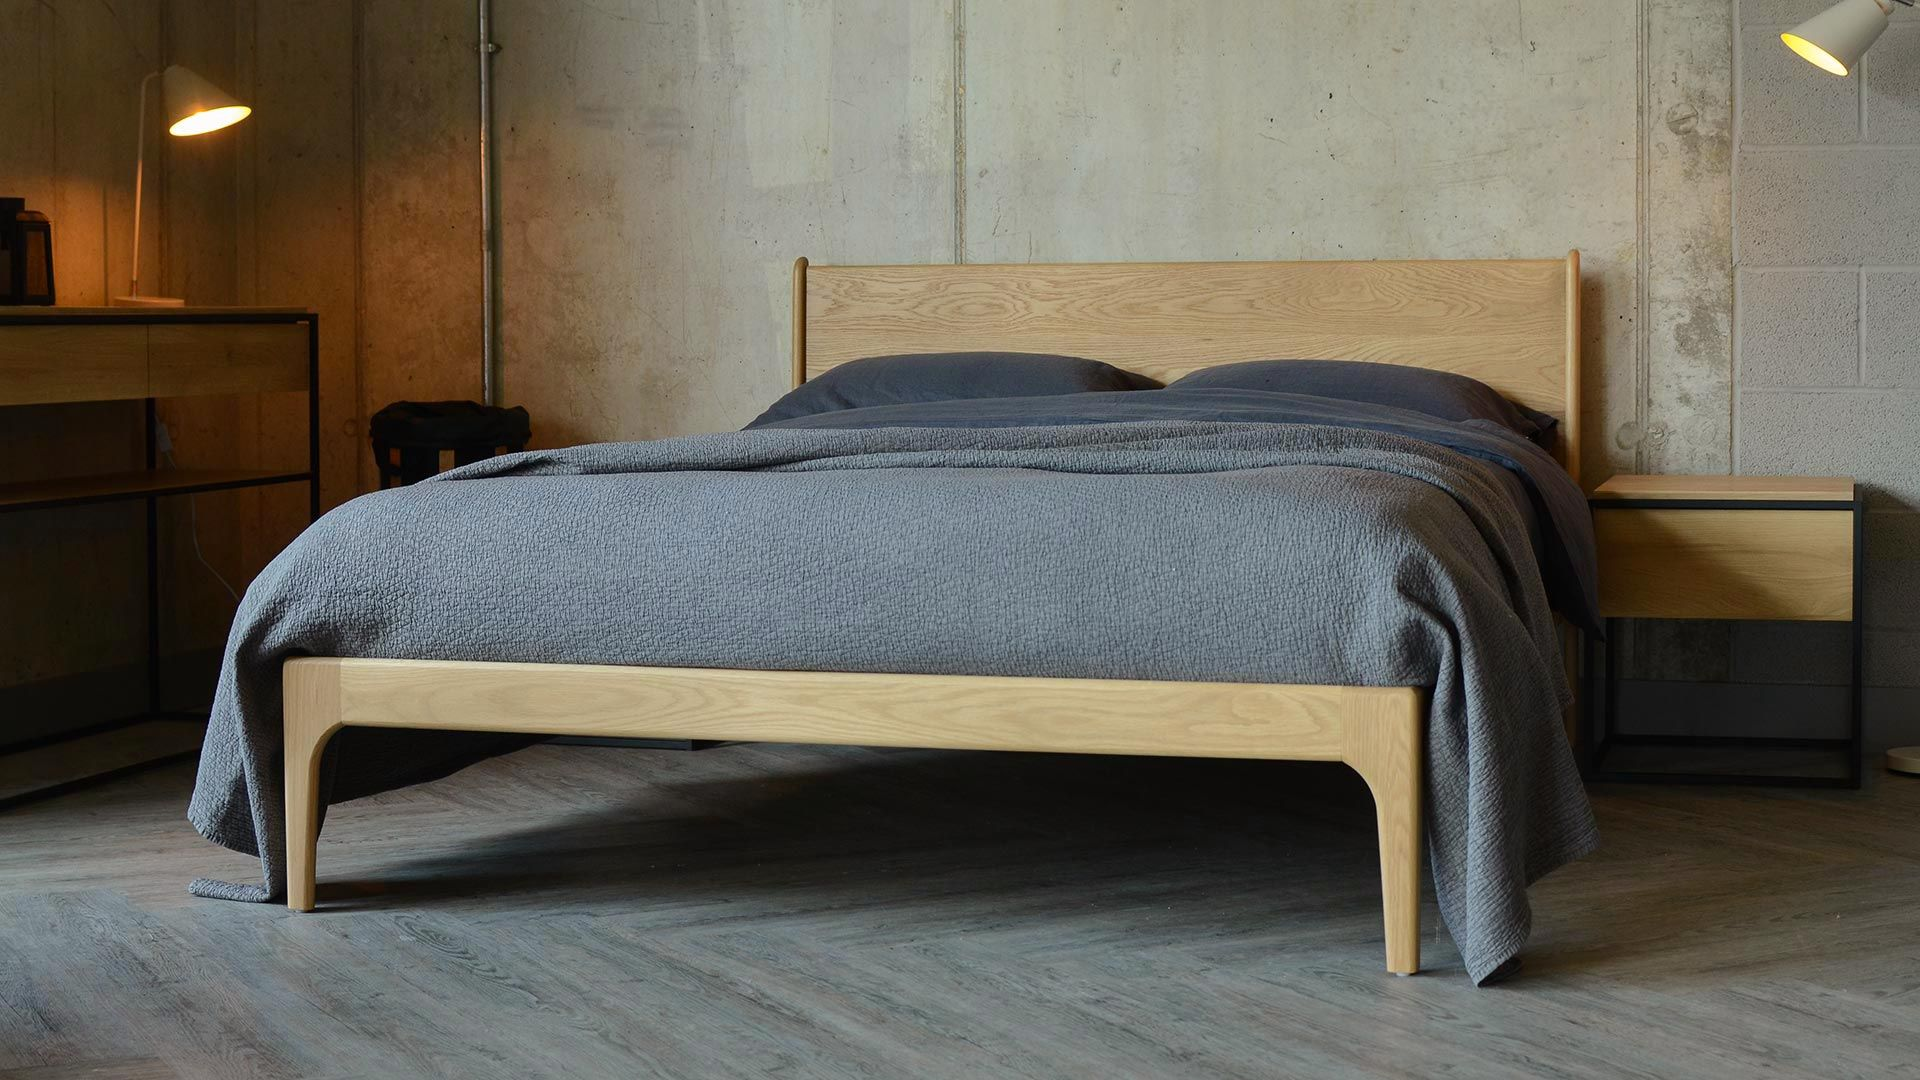 Phenomenal The Camden Handmade Bed Is A Contemporary Take On A Classic Beutiful Home Inspiration Truamahrainfo